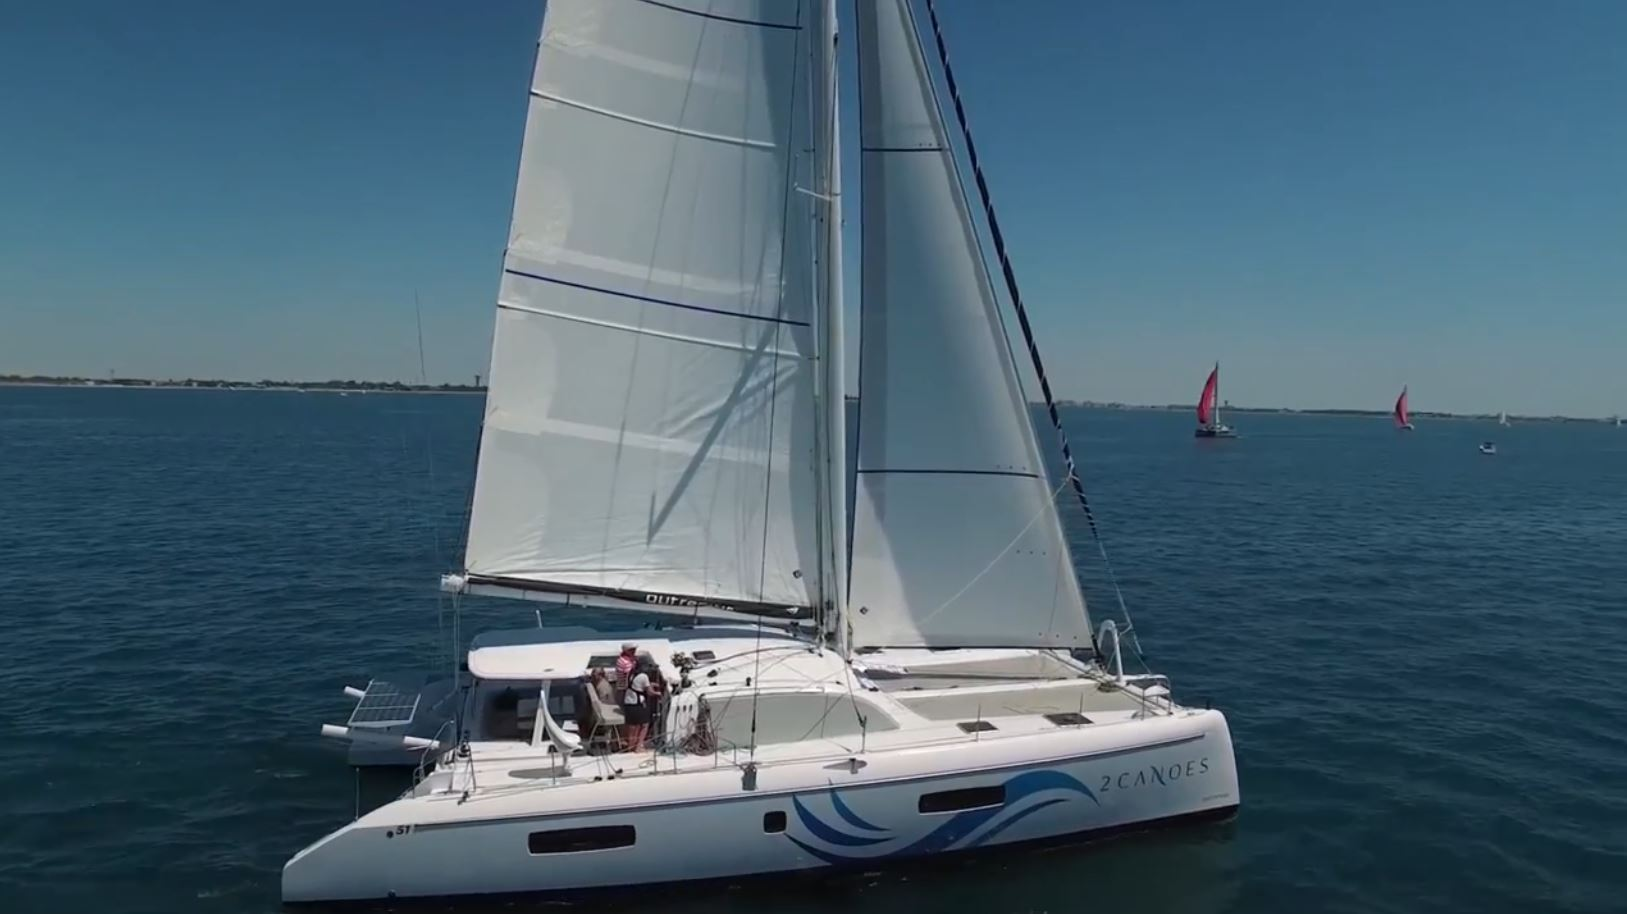 Outremer 51 -  2 Canoes